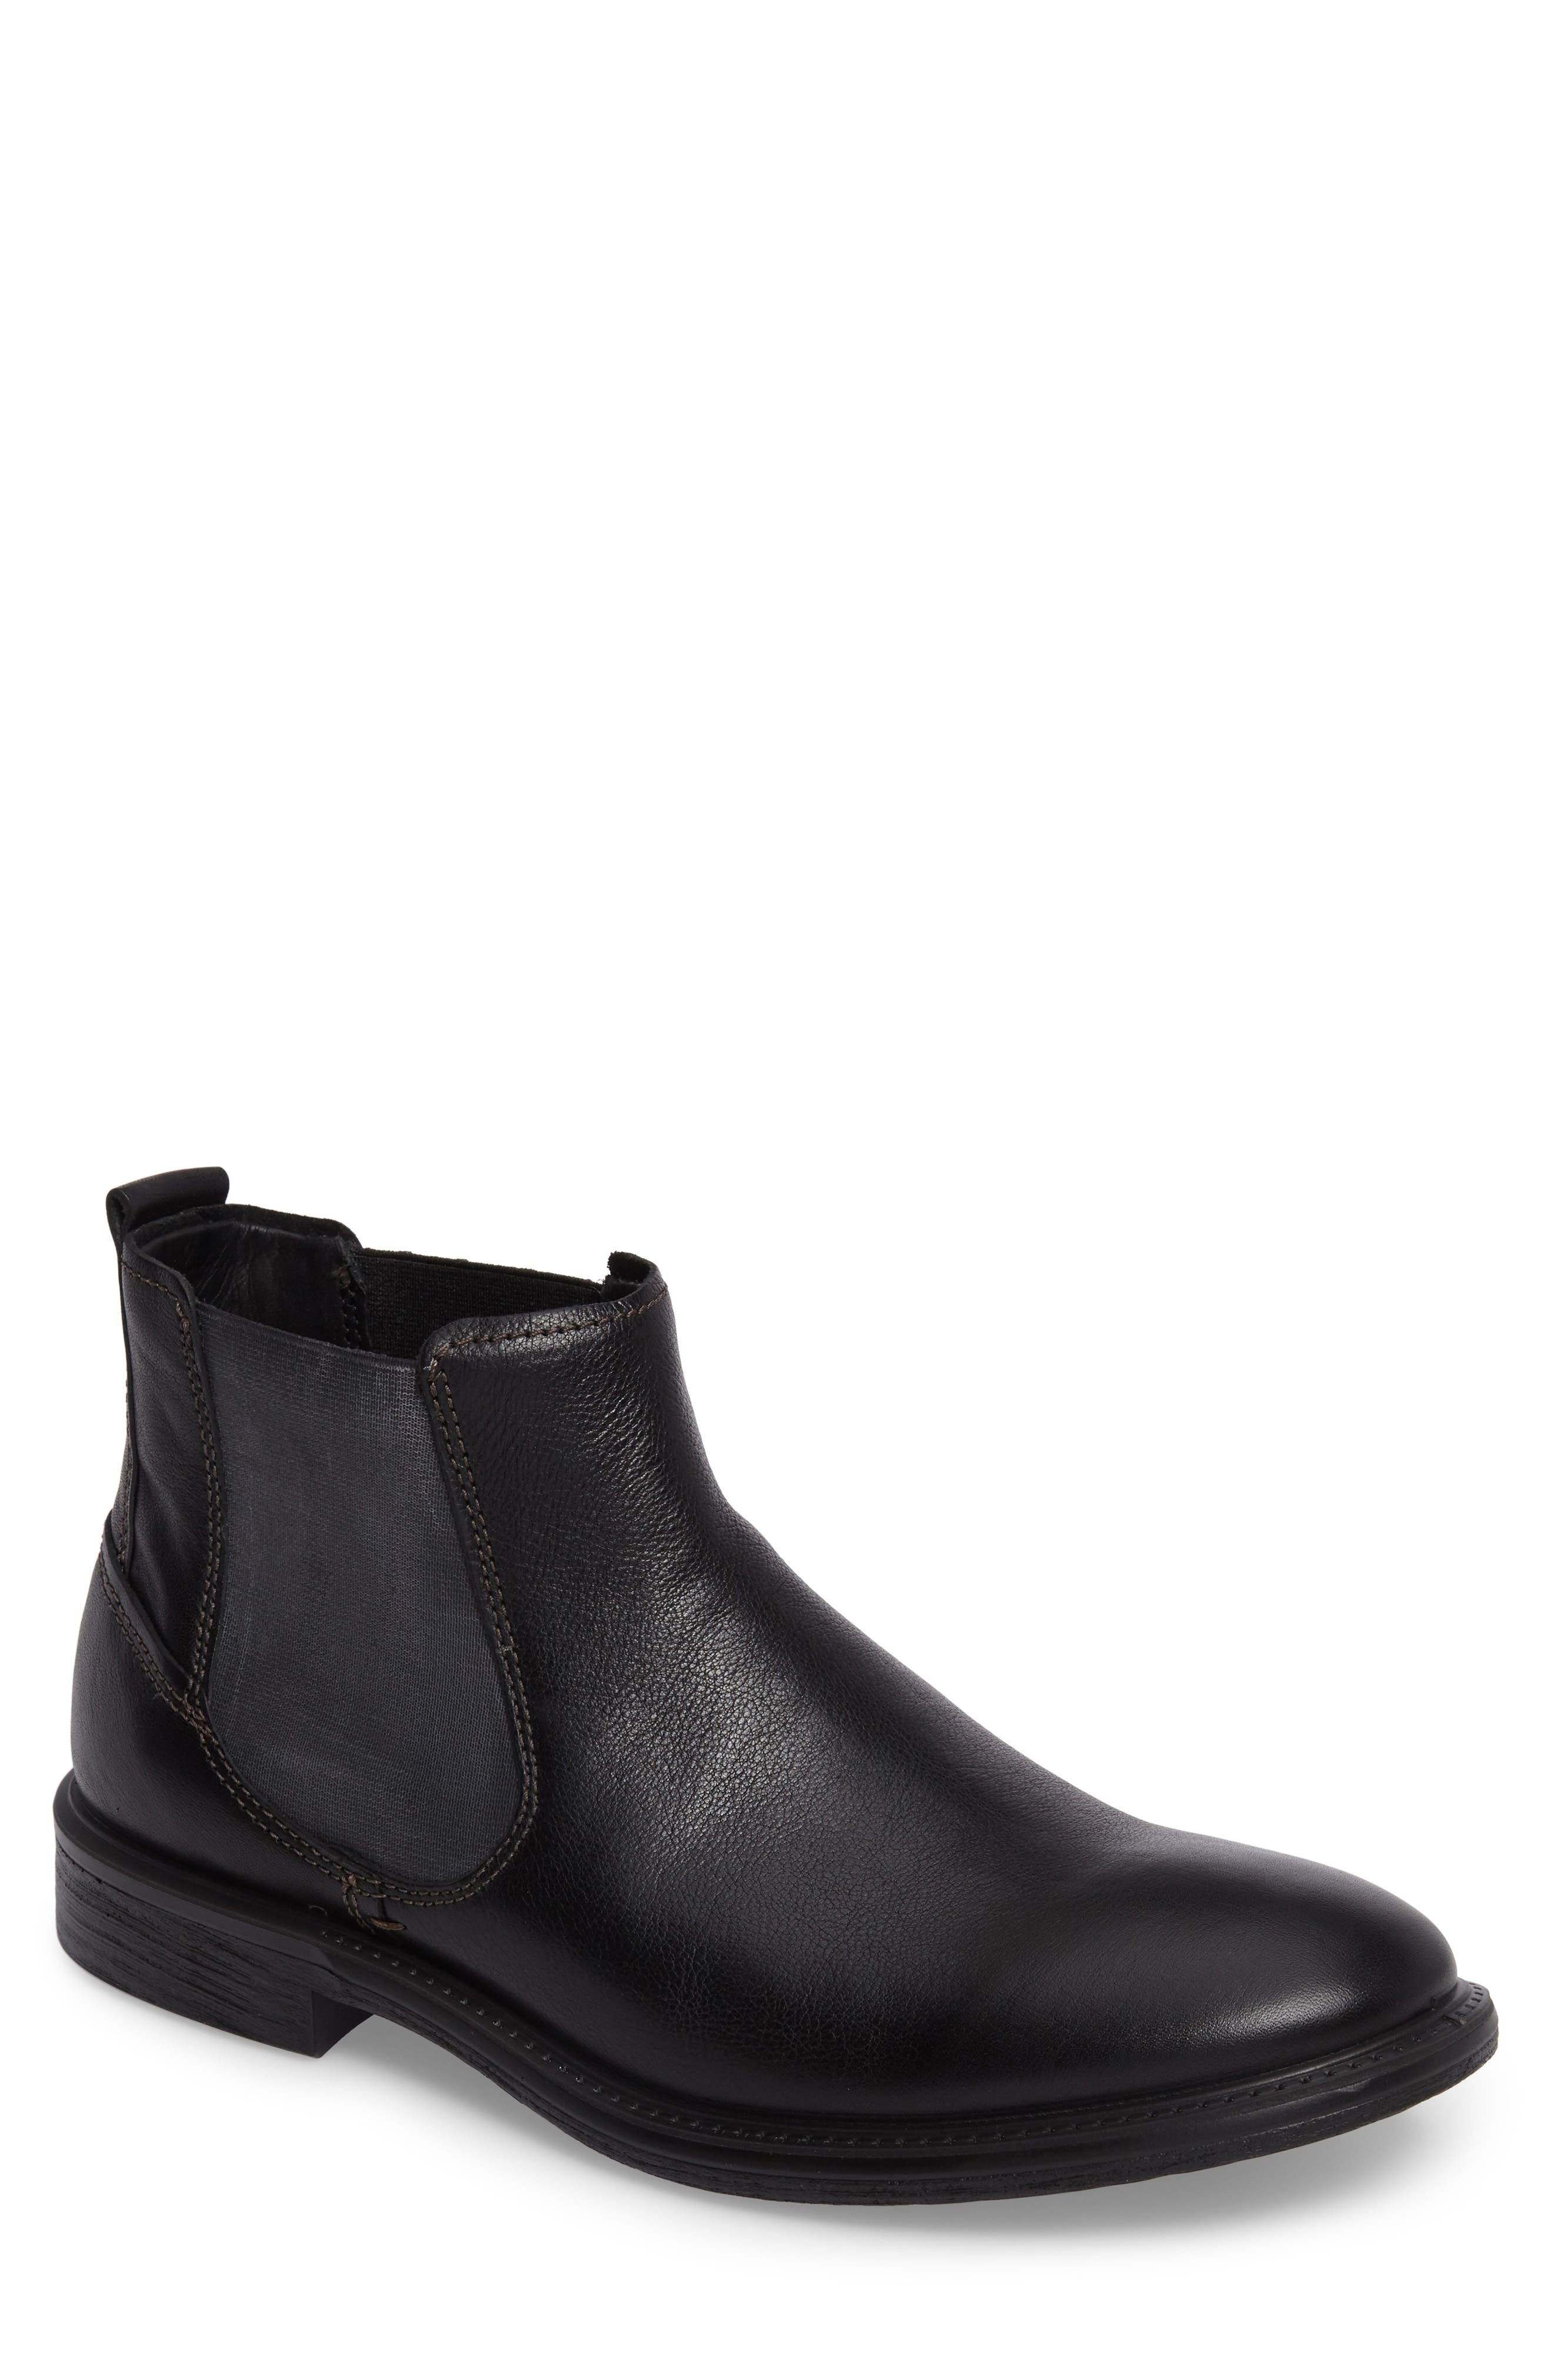 Main Image - ECCO Knoxville Chelsea Boot (Men)